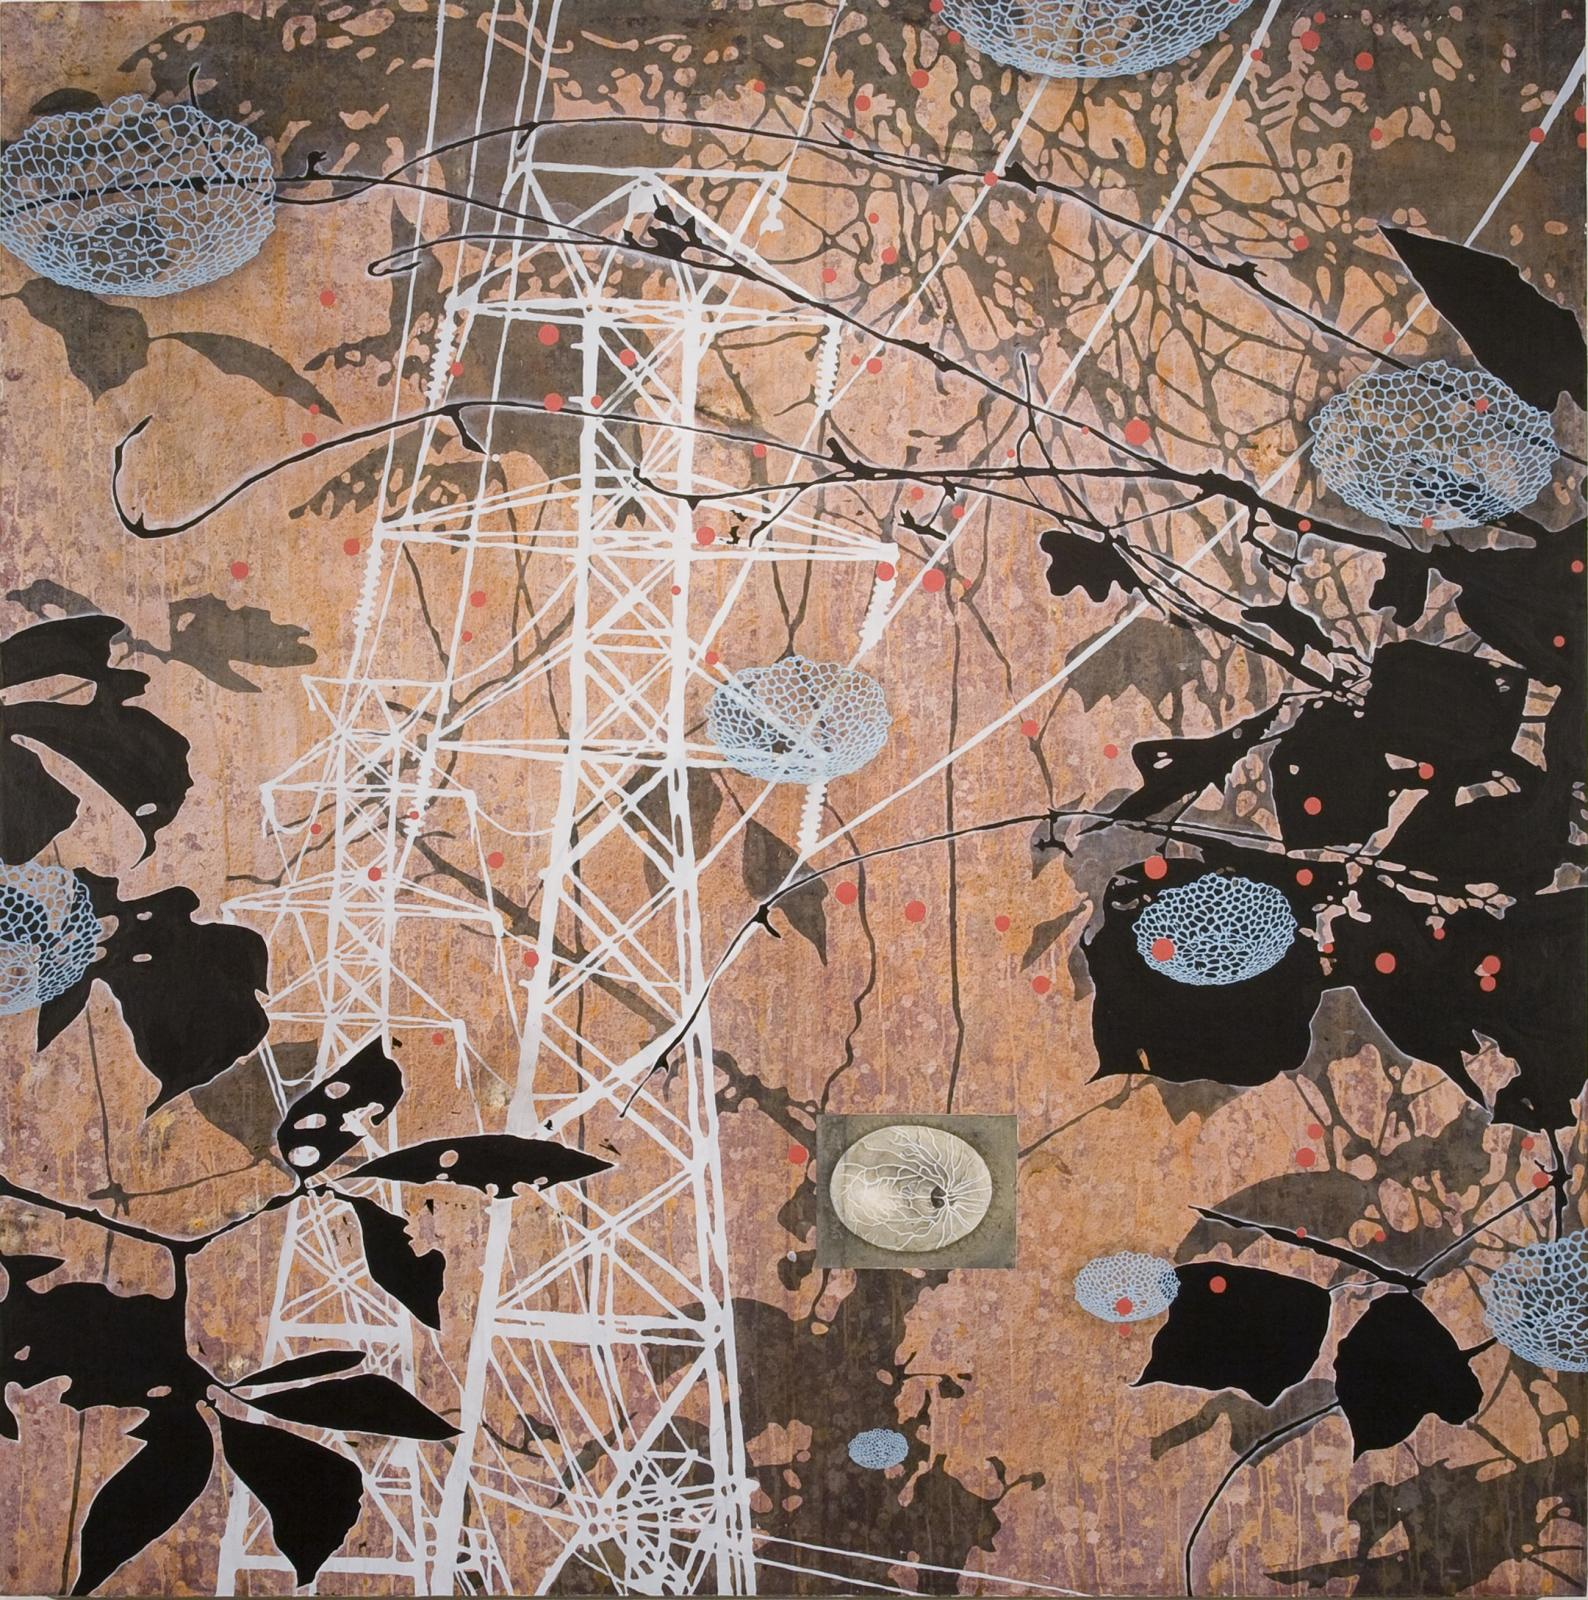 Tanja Softić, Migrant Universe: The Evangelist, 2008